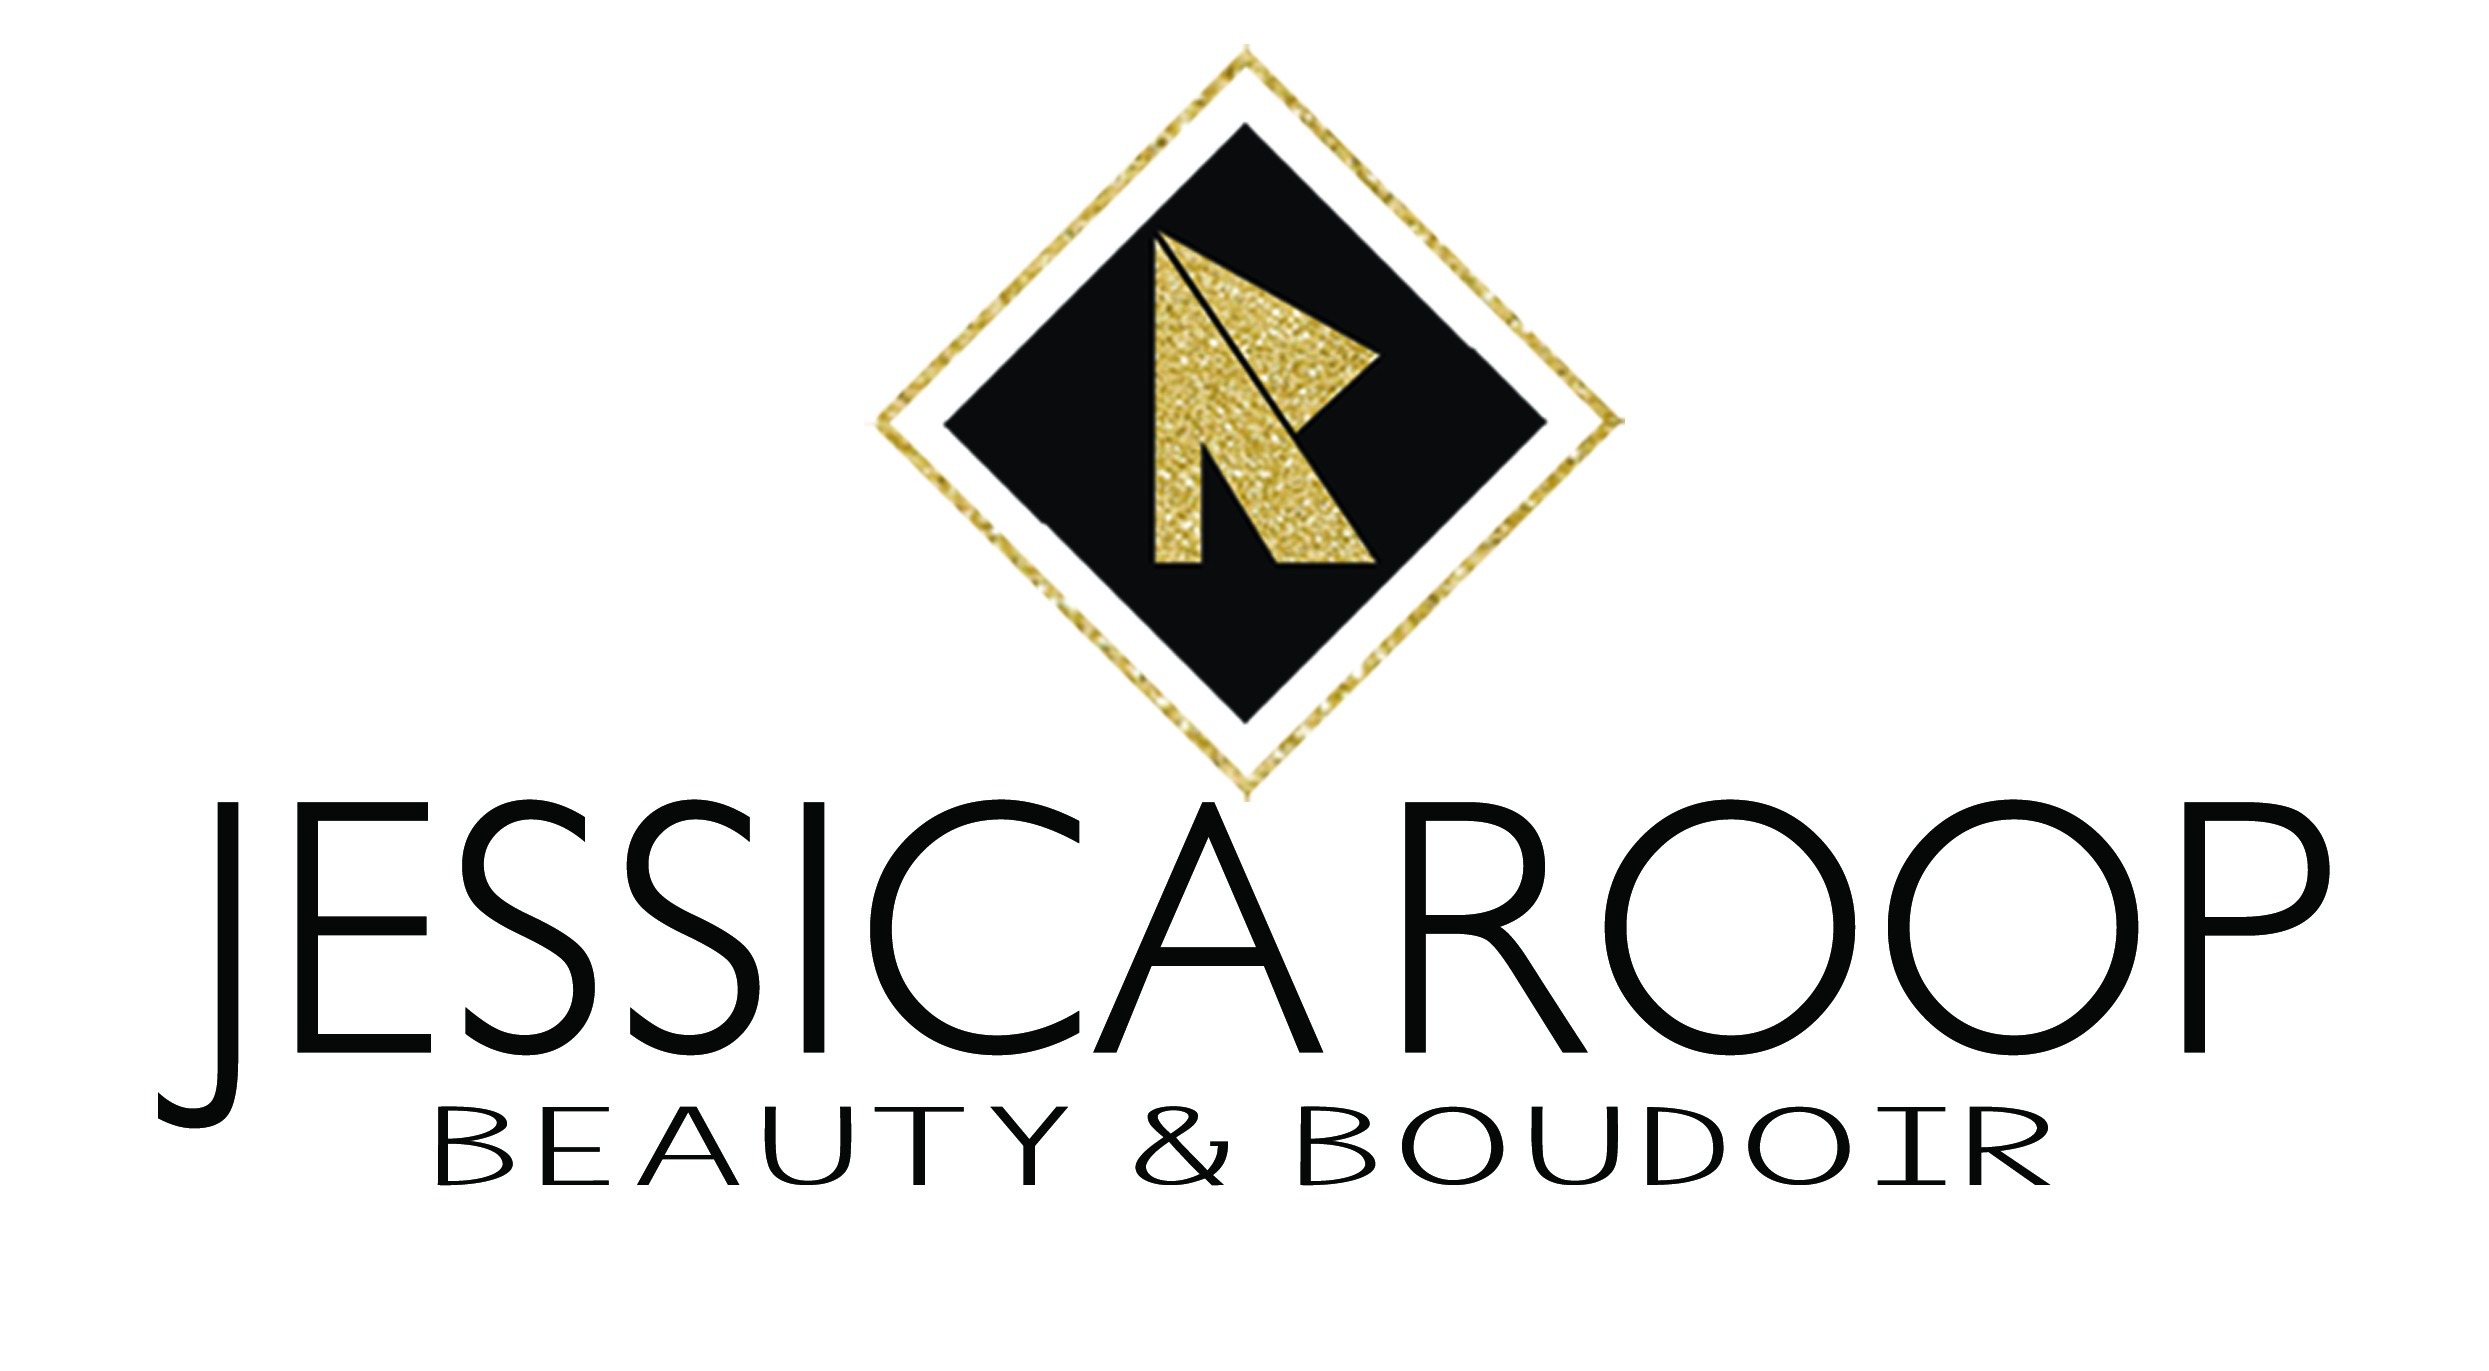 Jessica Roop Beauty & Boudoir - Austin Wedding Beauty